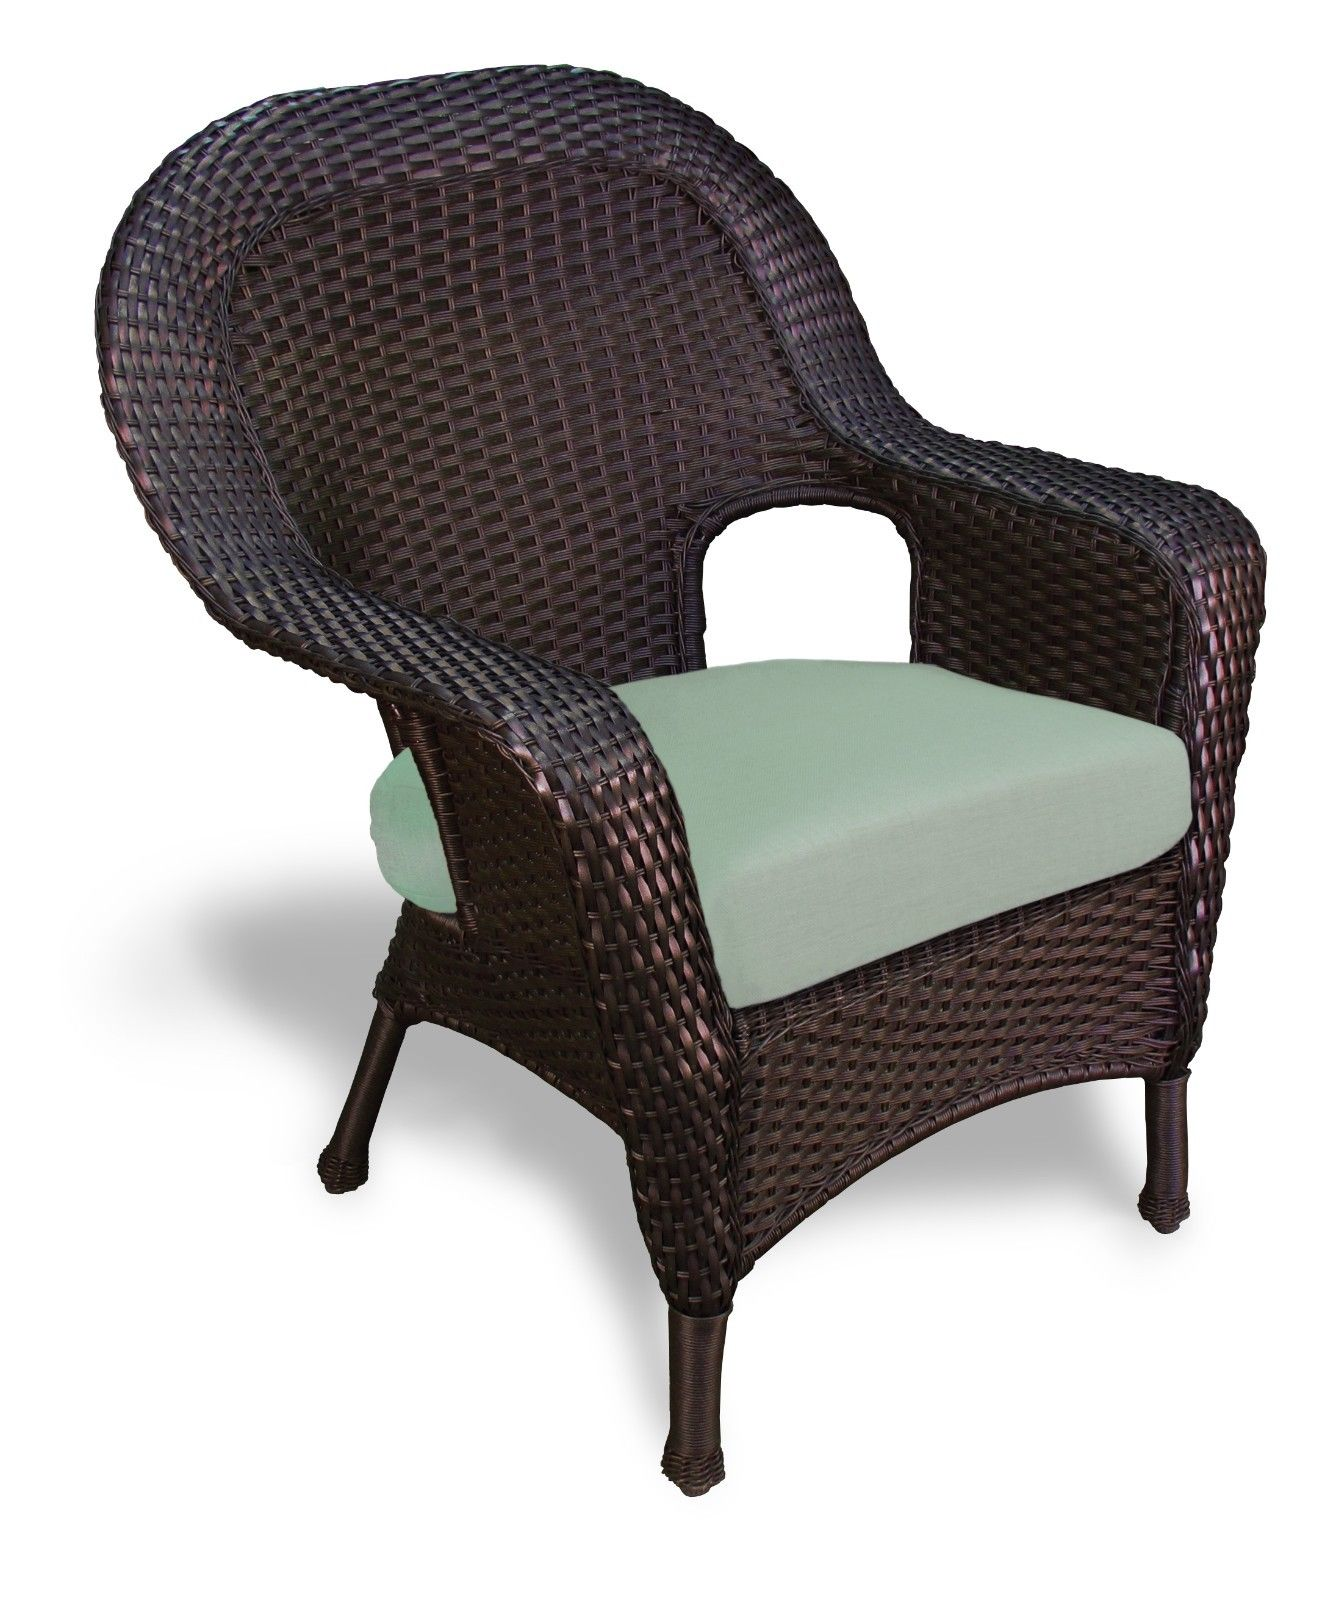 #144 - Outdoor Patio Garden Furniture Tortoise Resin Wicker Dining Chair in Rave Spearmint